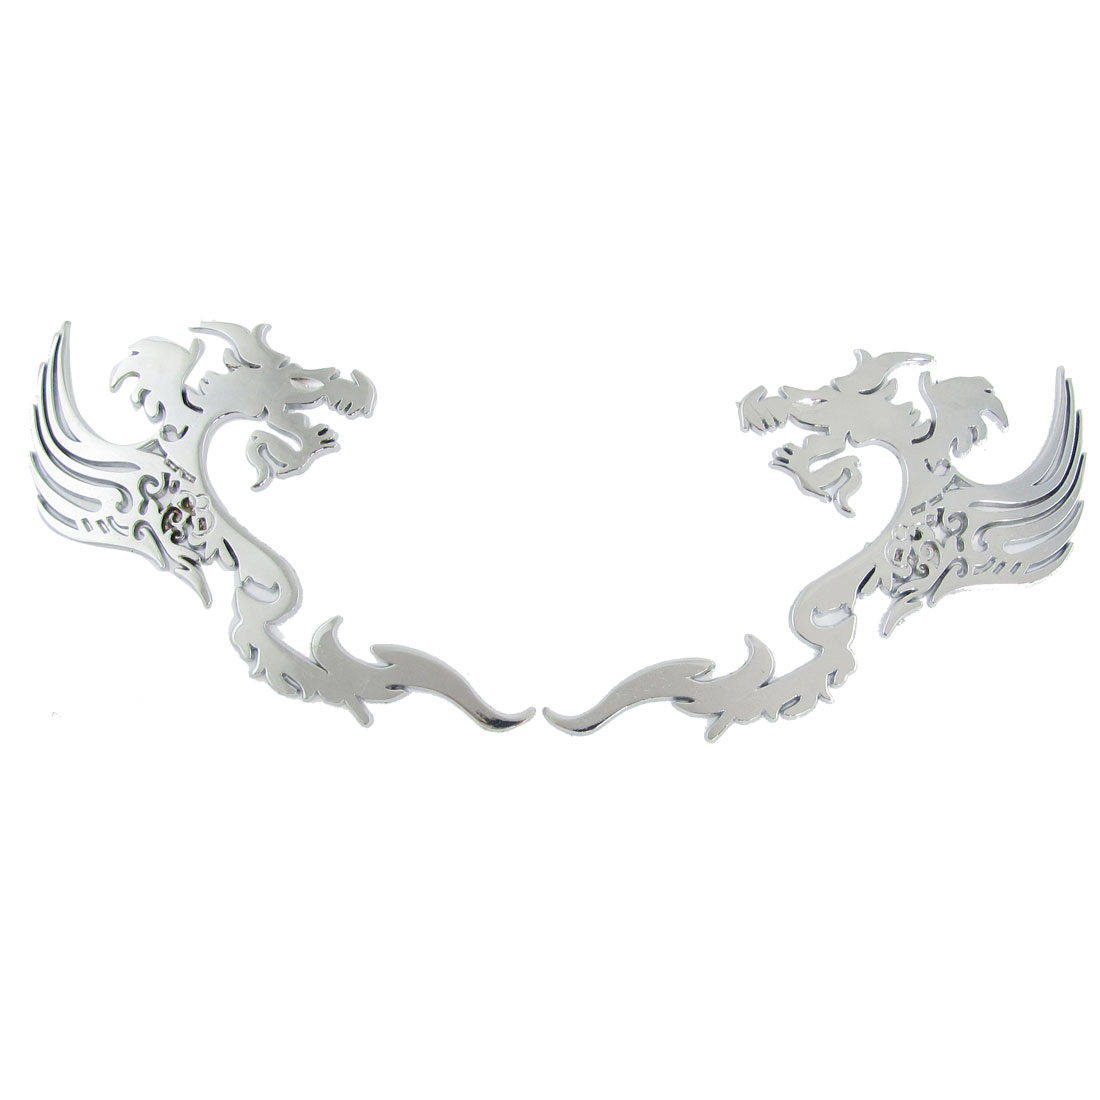 2 Pcs Car Vehicle Ornament 3D Dragon Shape Sticker Silver Tone